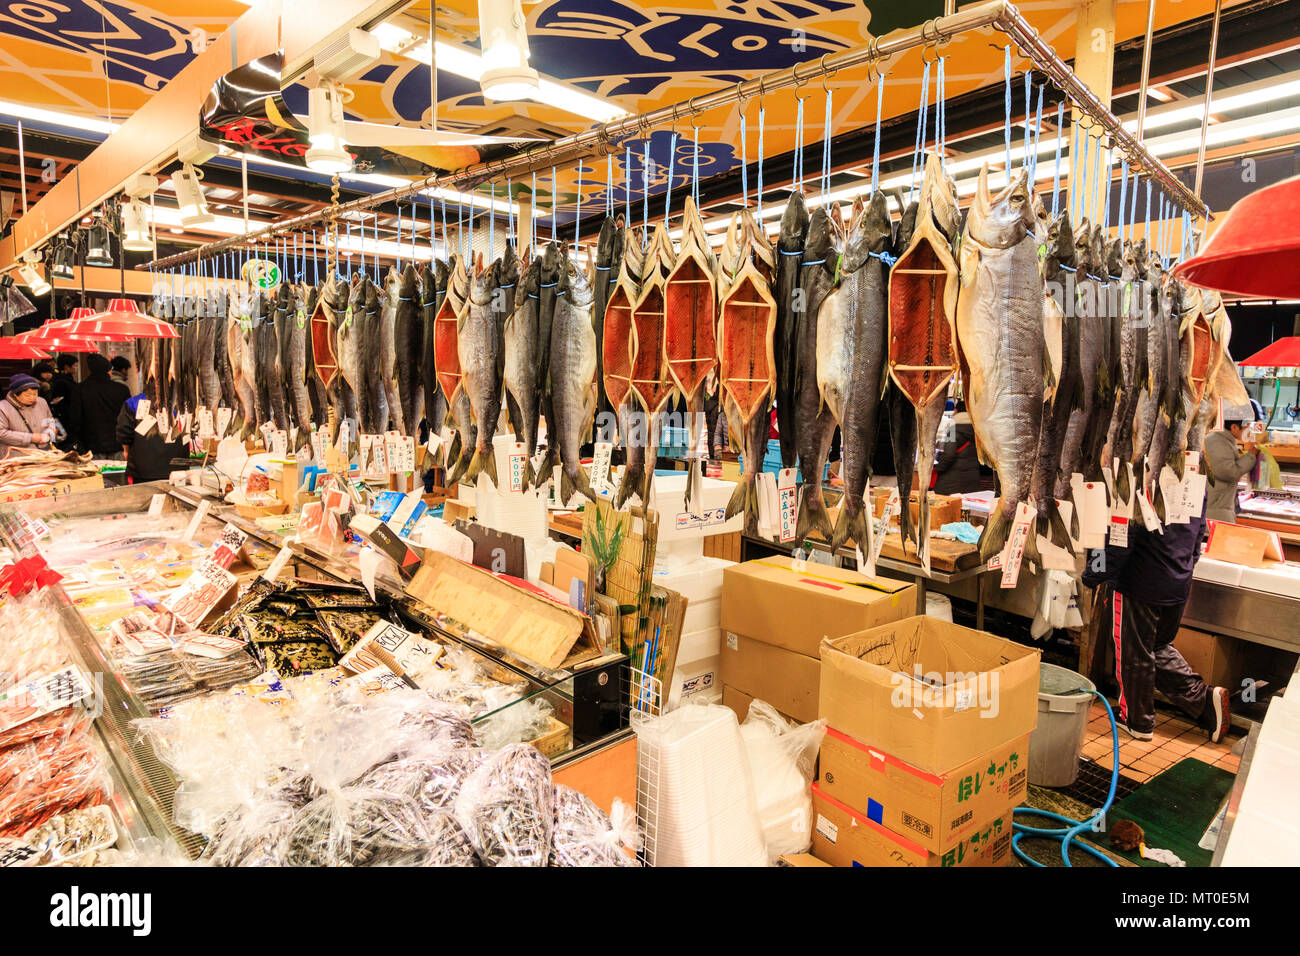 Indoor Omicho Ichiba, Omicho fresh food Market in Kanazawa, Japan. Large fish market store, with gutted fish hanging, sticks holding stomachs open. - Stock Image